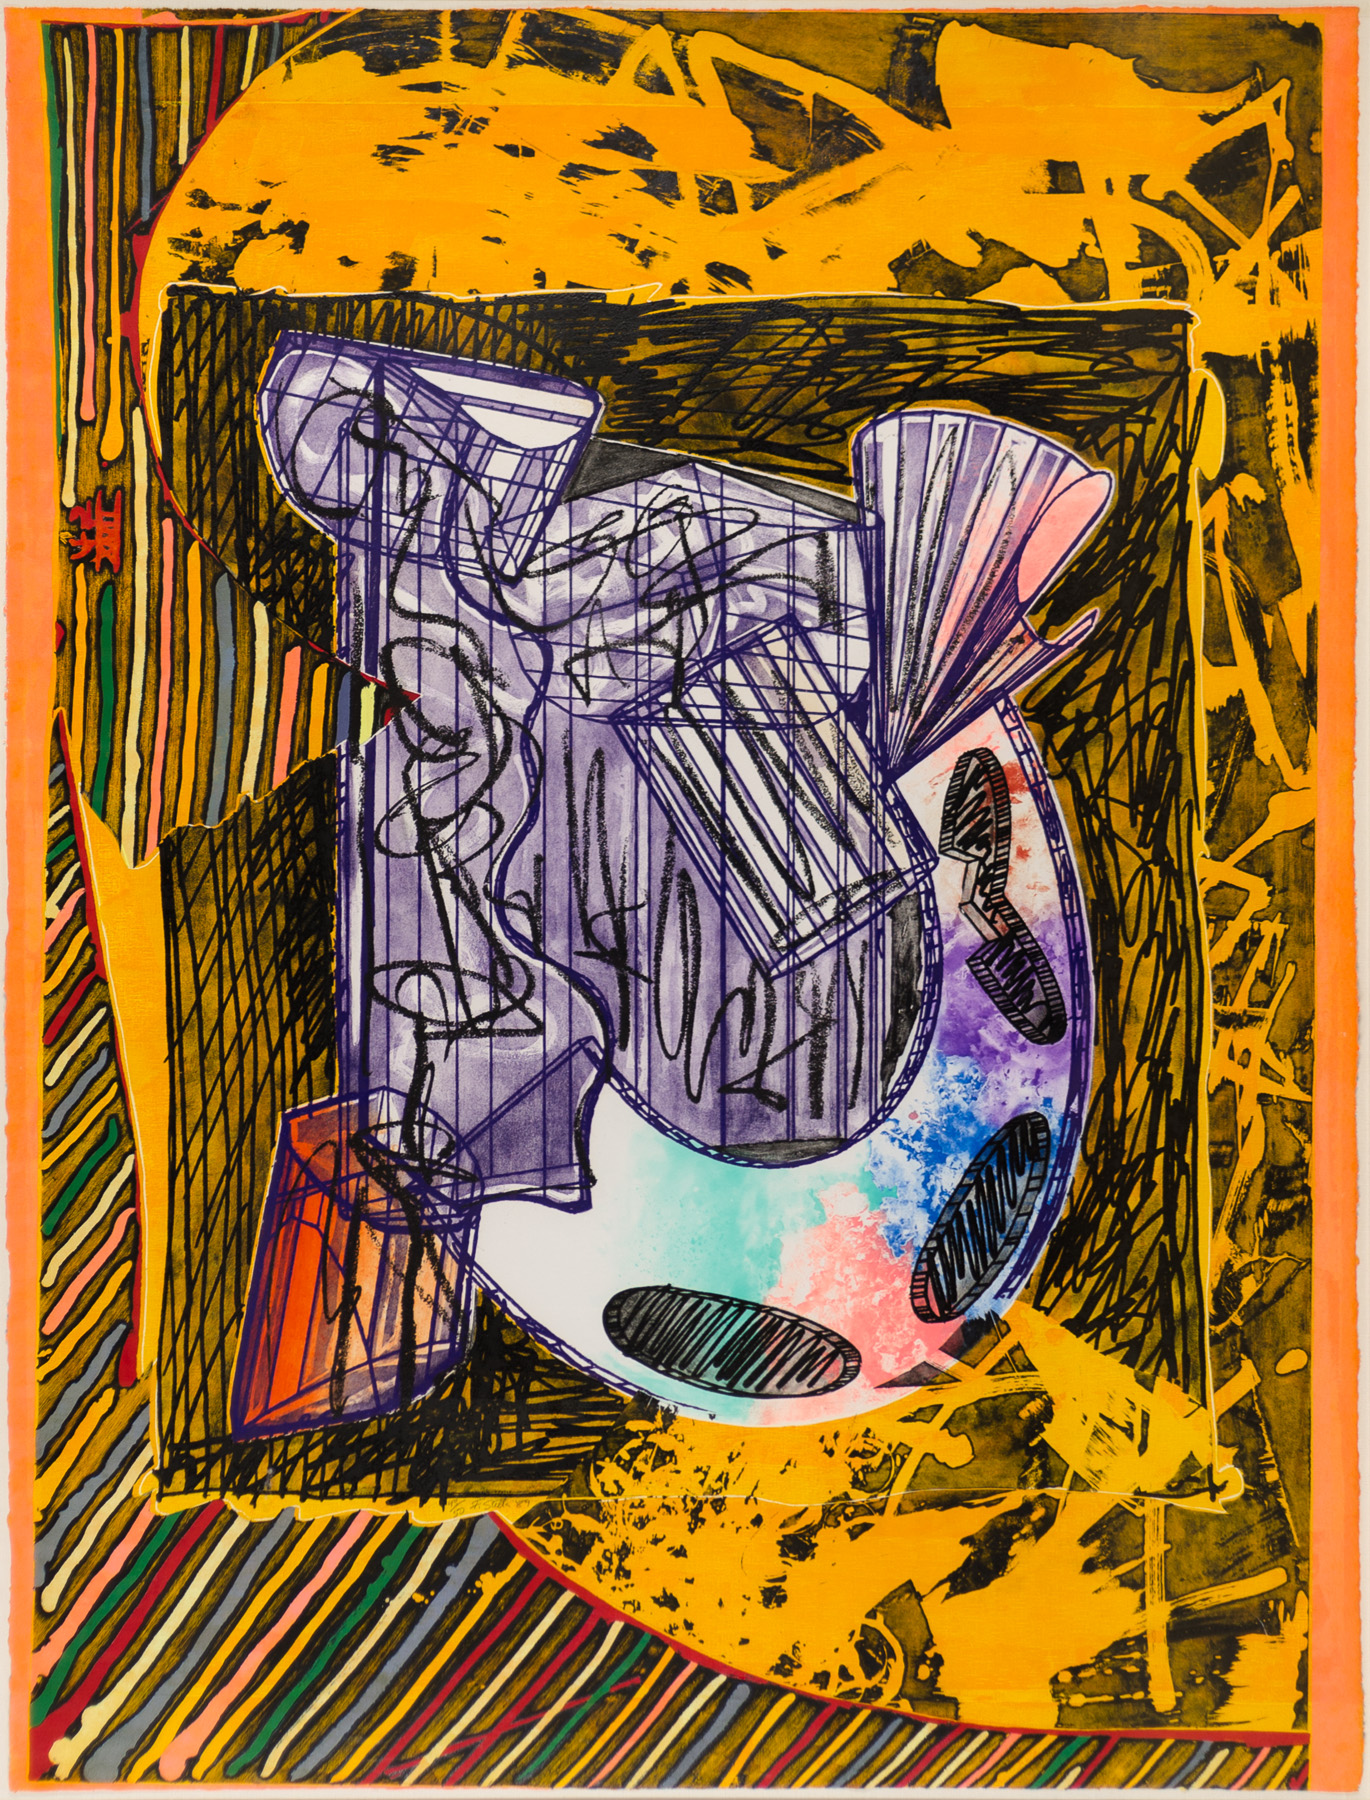 Bene Come il Sale artwork by Frank Stella - art listed for sale on Artplode